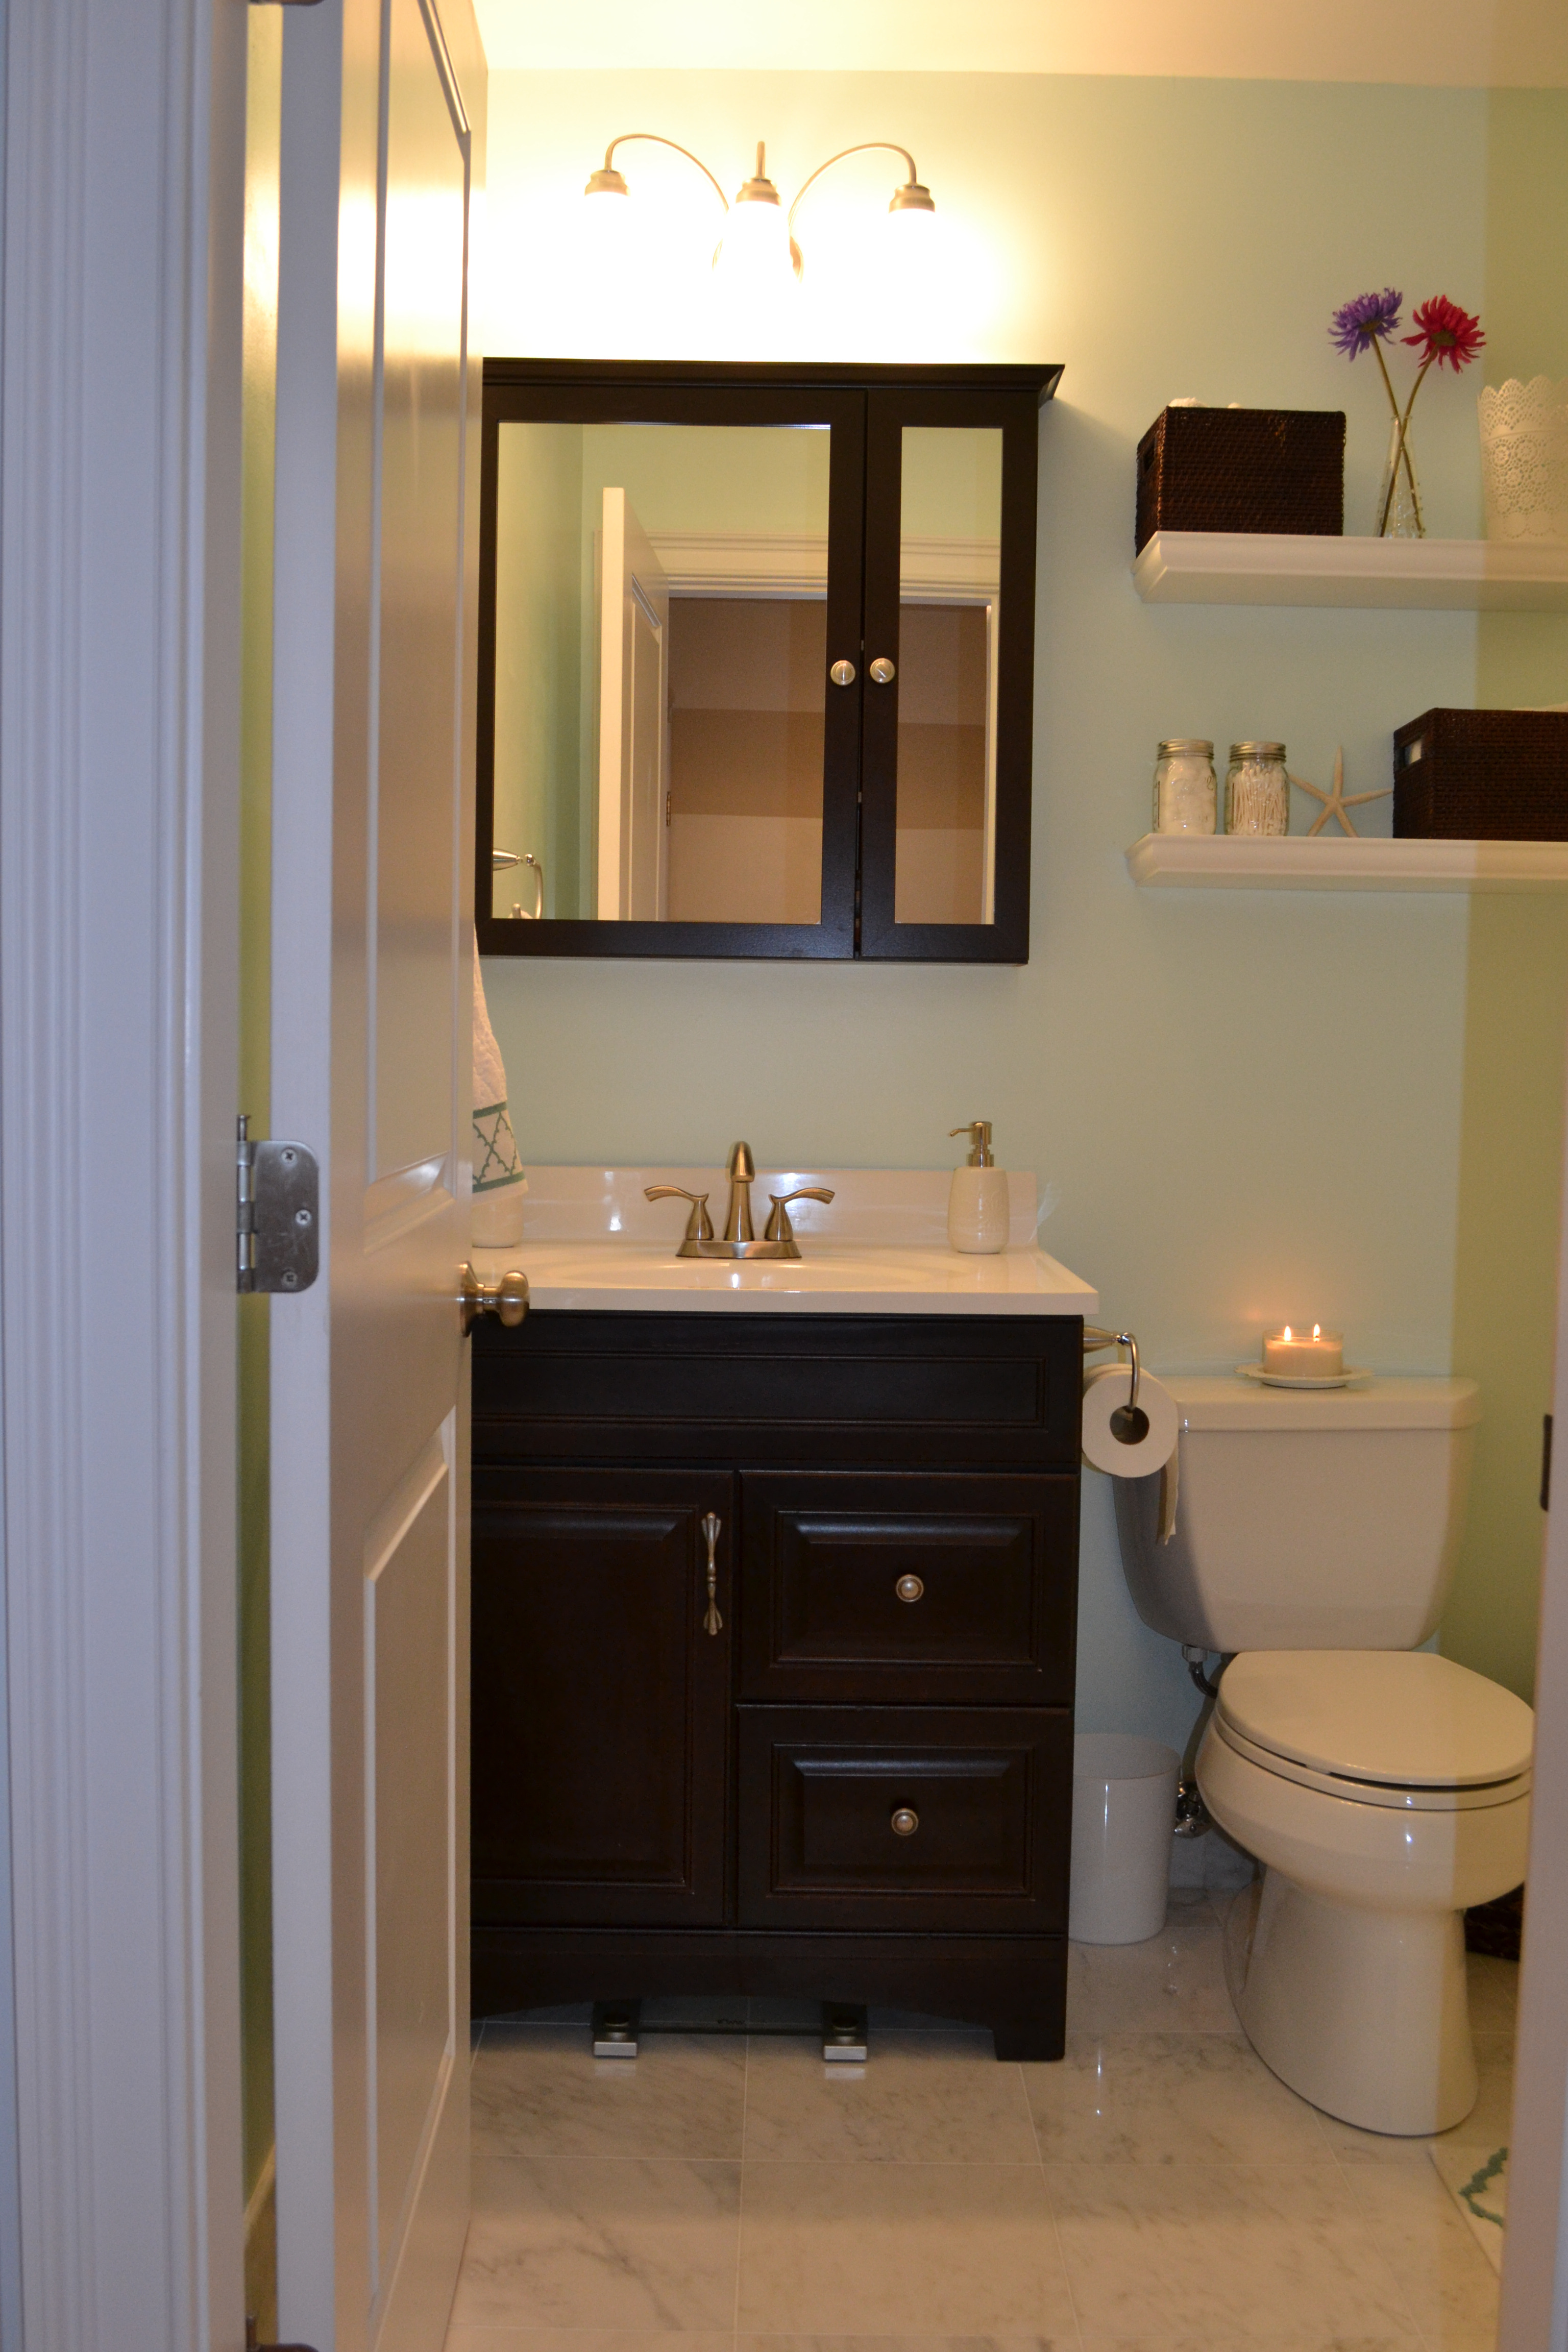 Decoration Ideas for Small Bathrooms Lovely Elegant Bathroom Wall Decorating Ideas Small Bathrooms